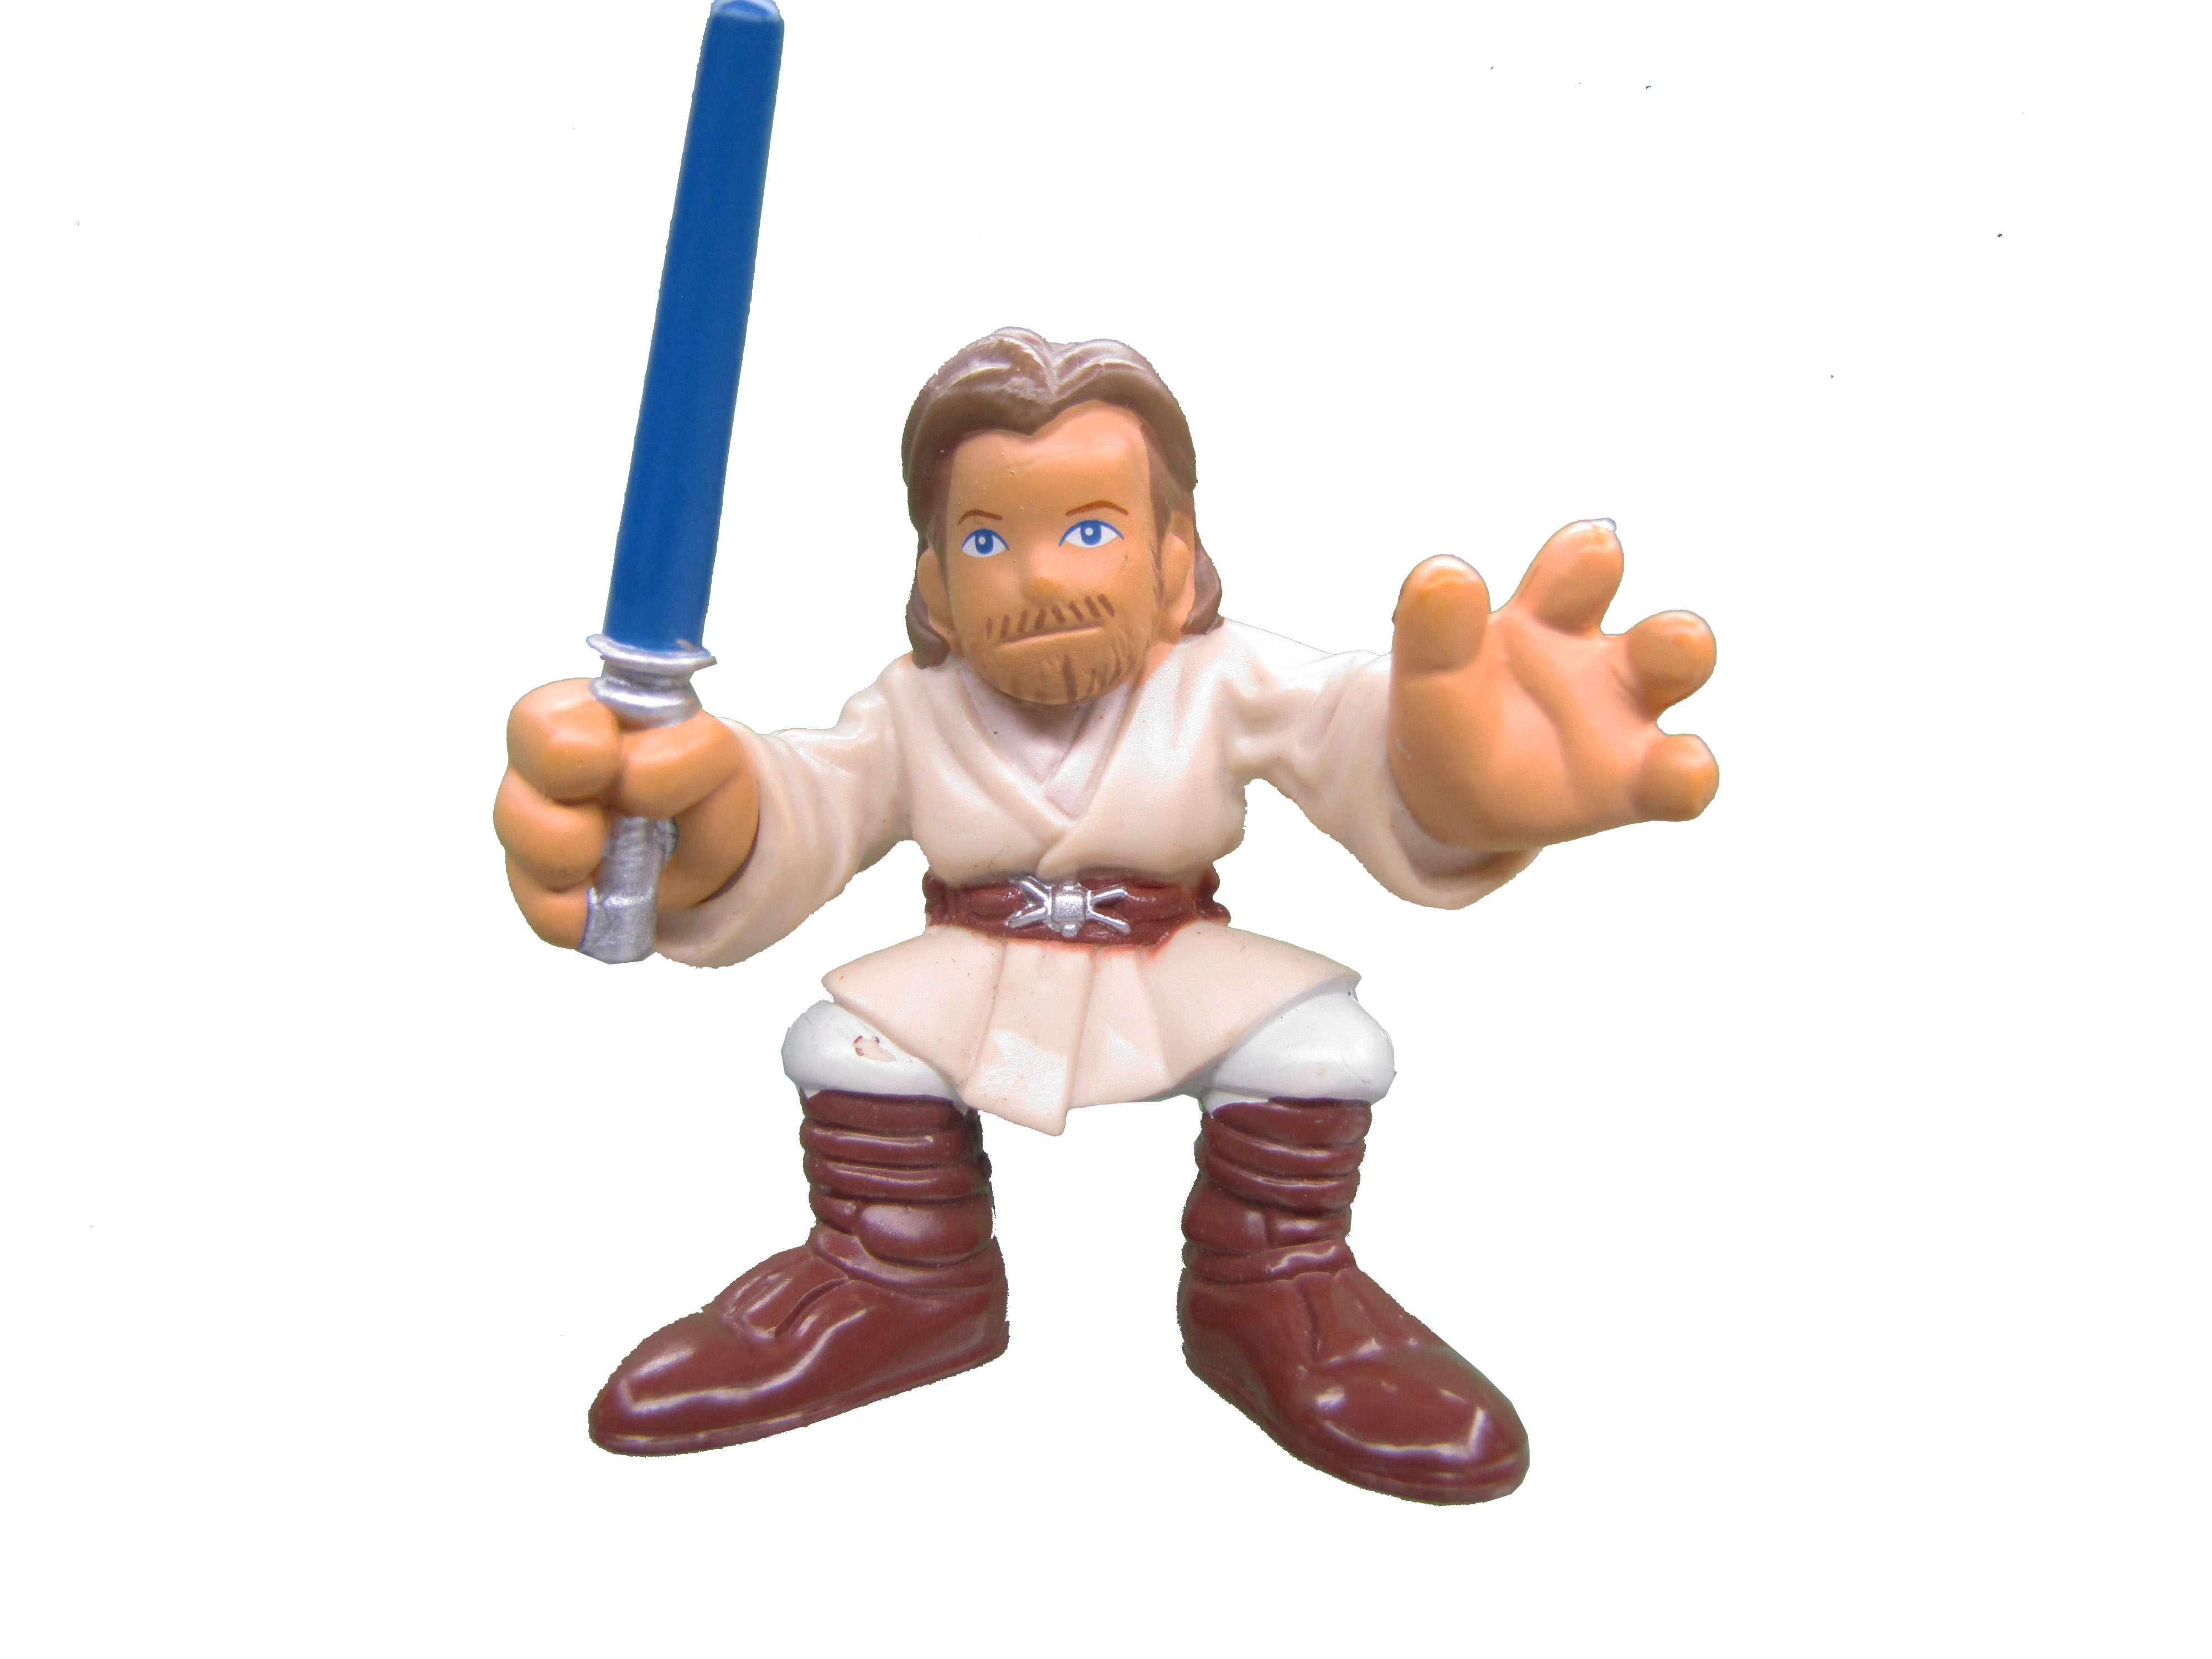 Star Wars Galactic Heroes KAMINO SHOWDOWN OBI-WAN KENOBI